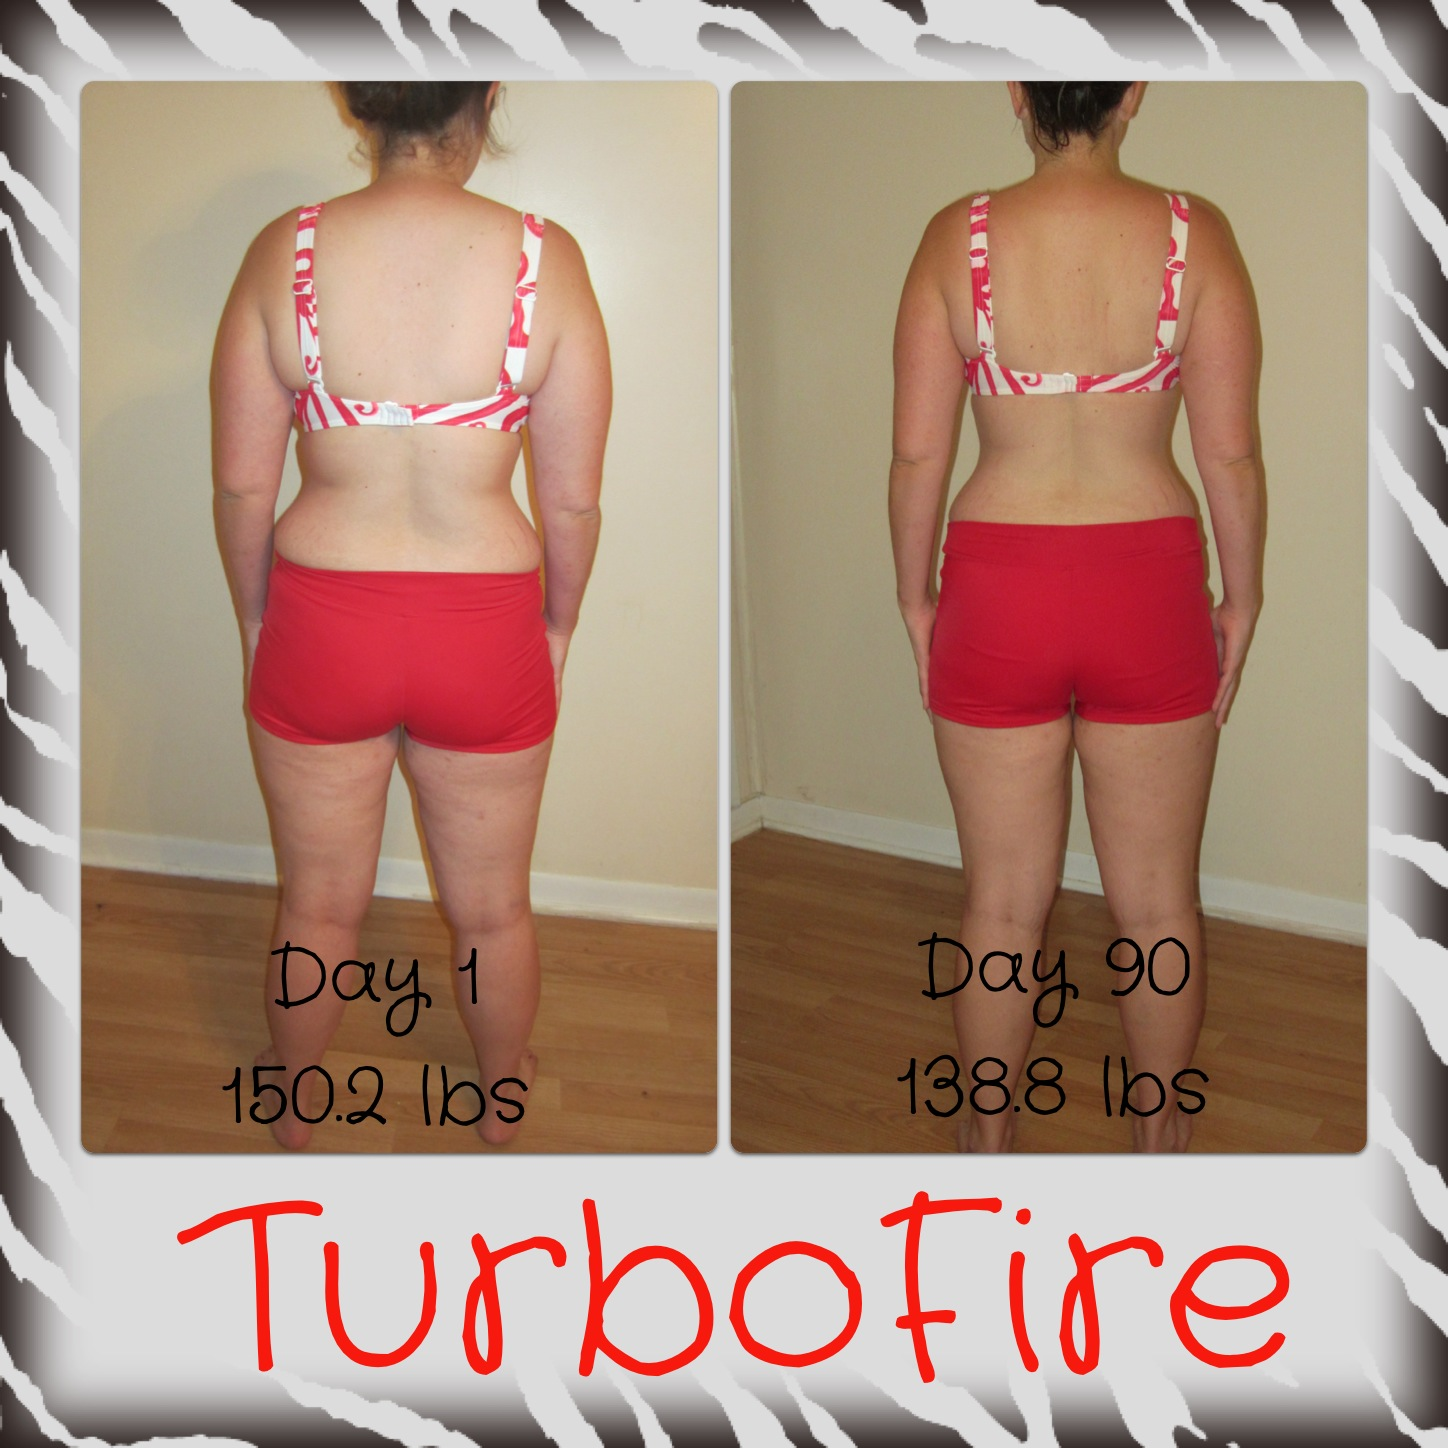 ... Michaels Body Revolution Schedule Pdf Turbofire 90 day results